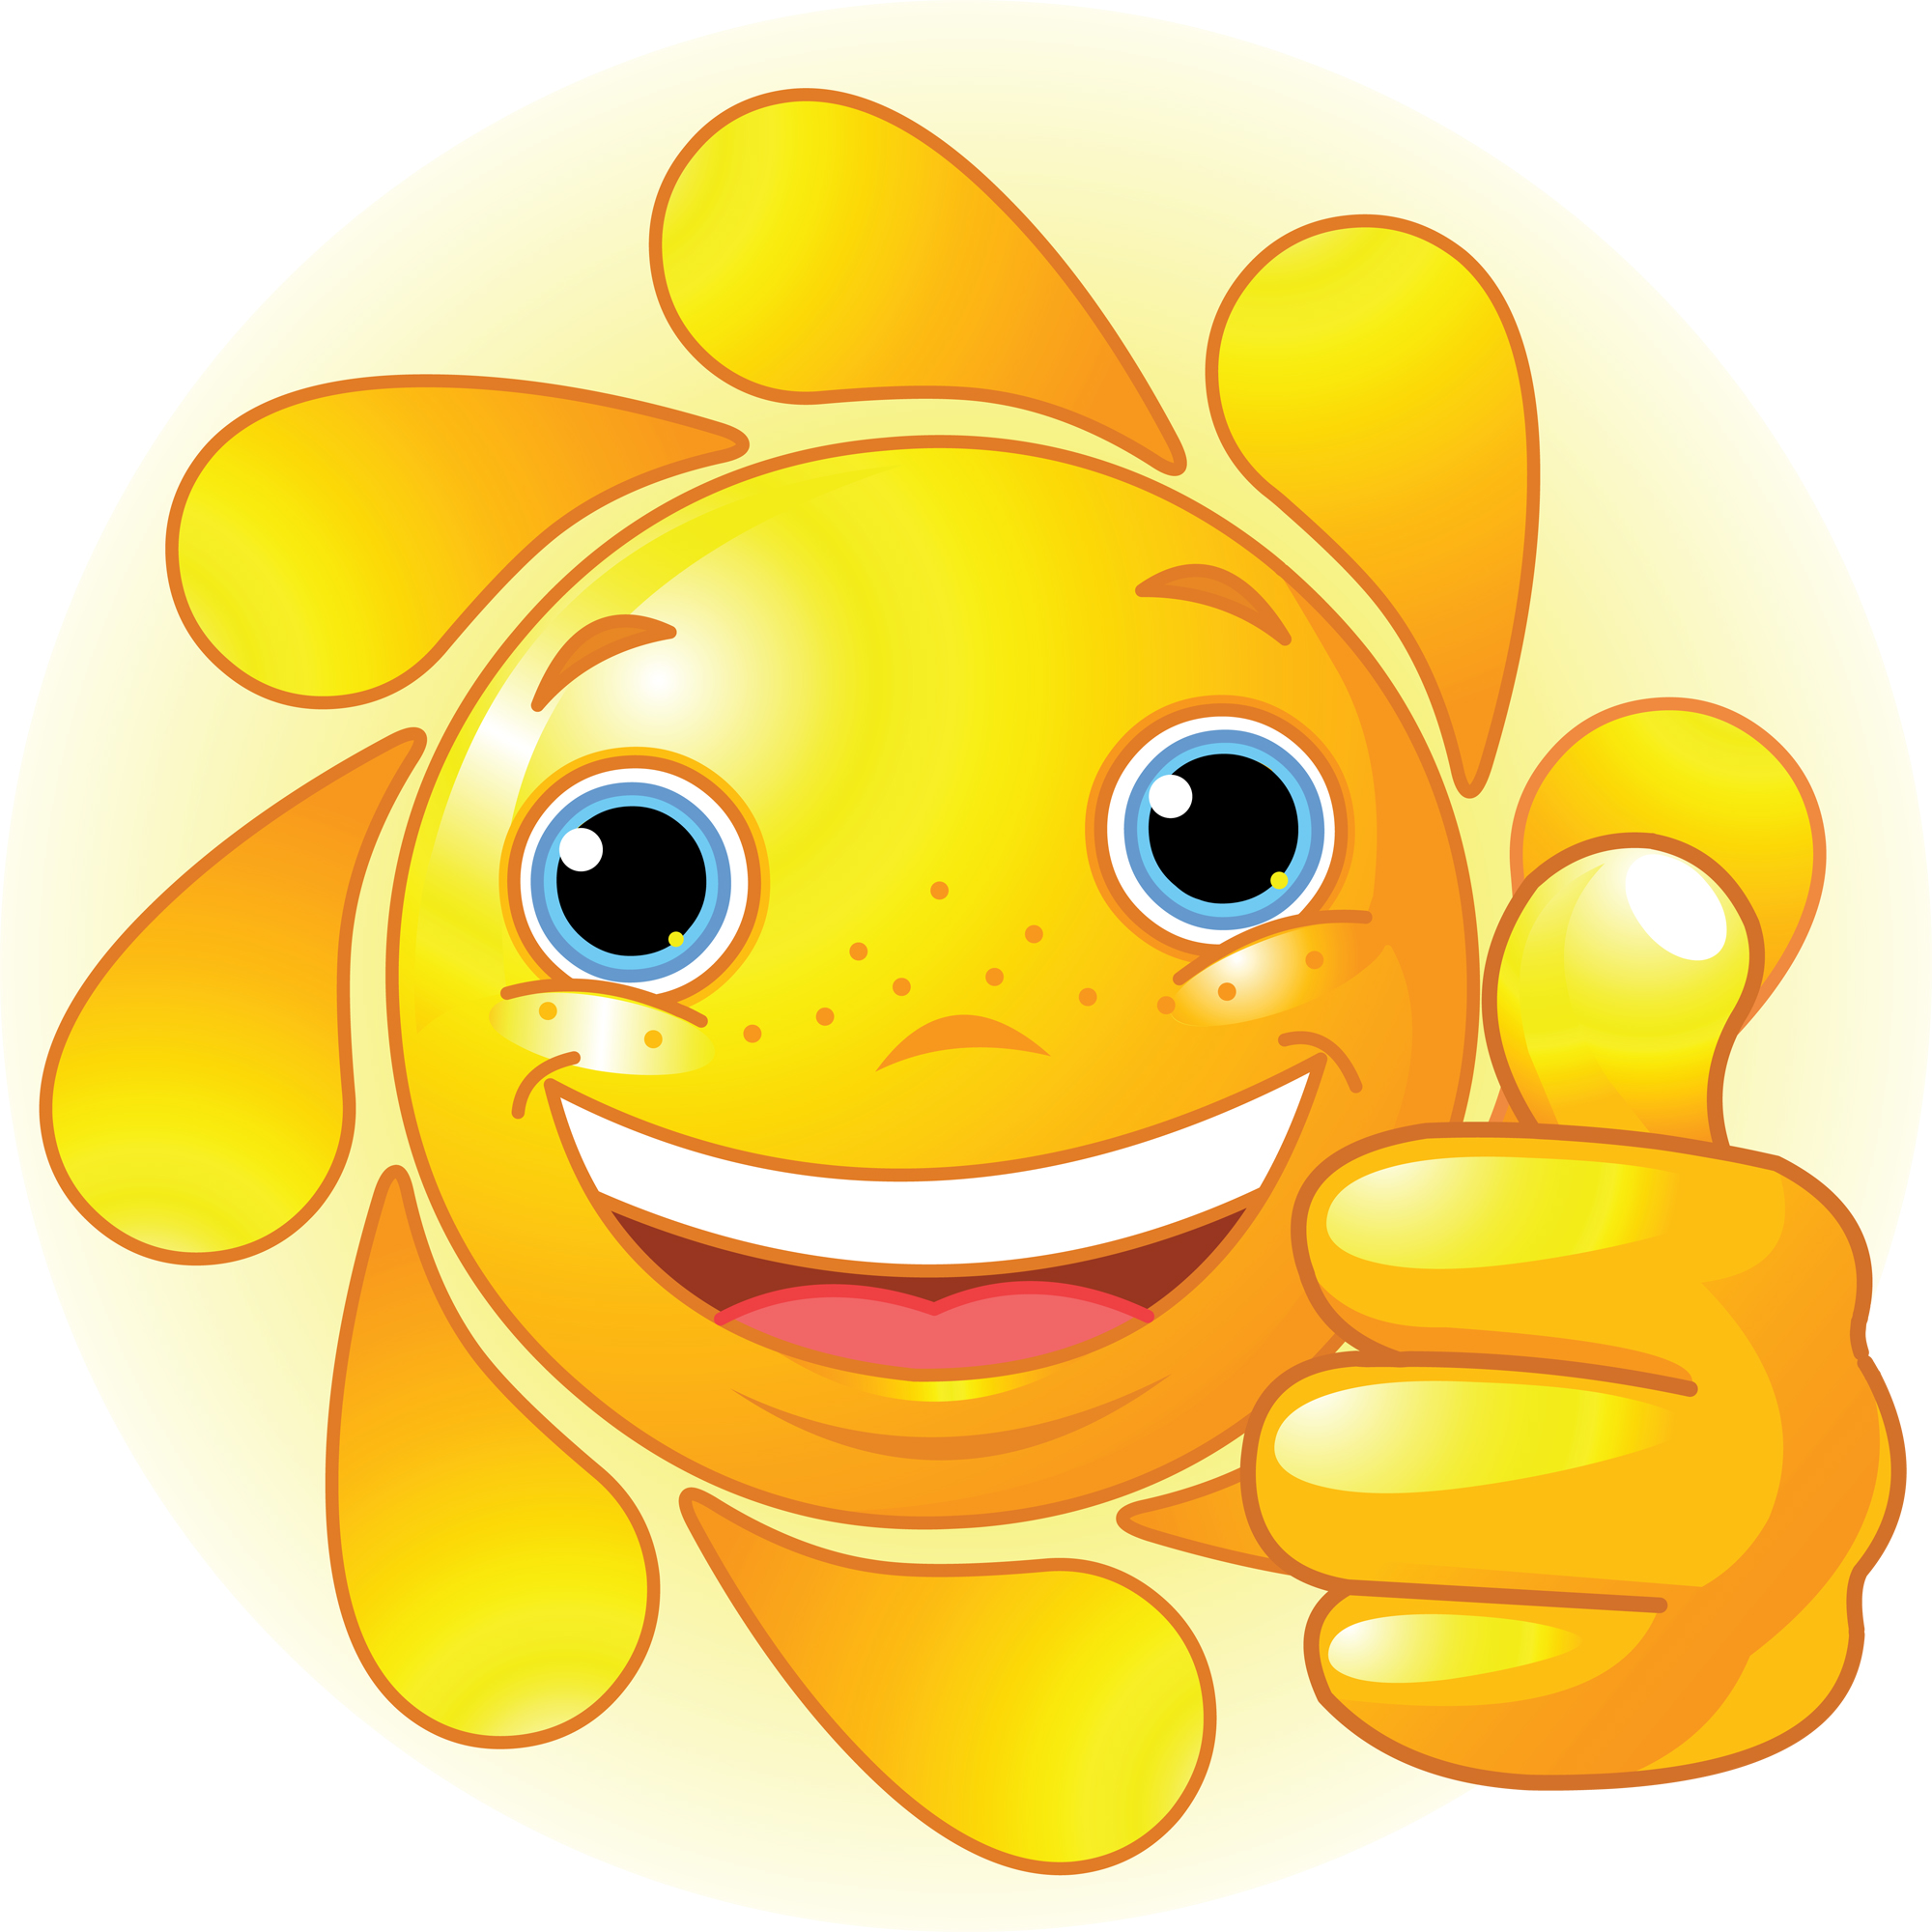 Smiling Sun Clip Art | Clipart library - Free Clipart Images